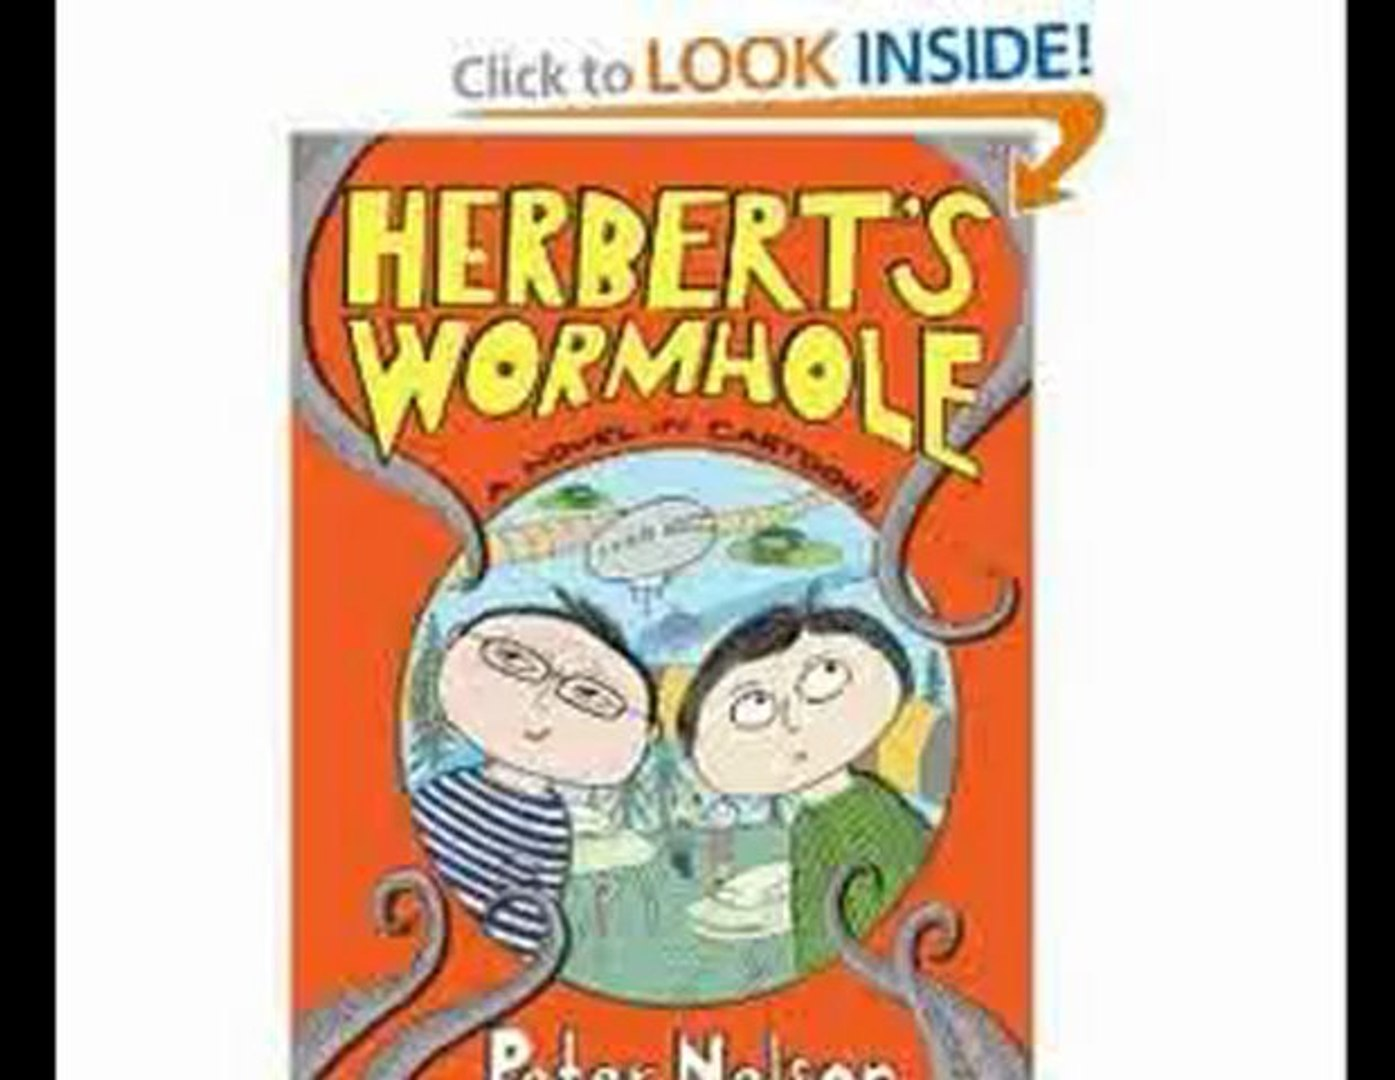 Herberts Wormhole Peter Nelson